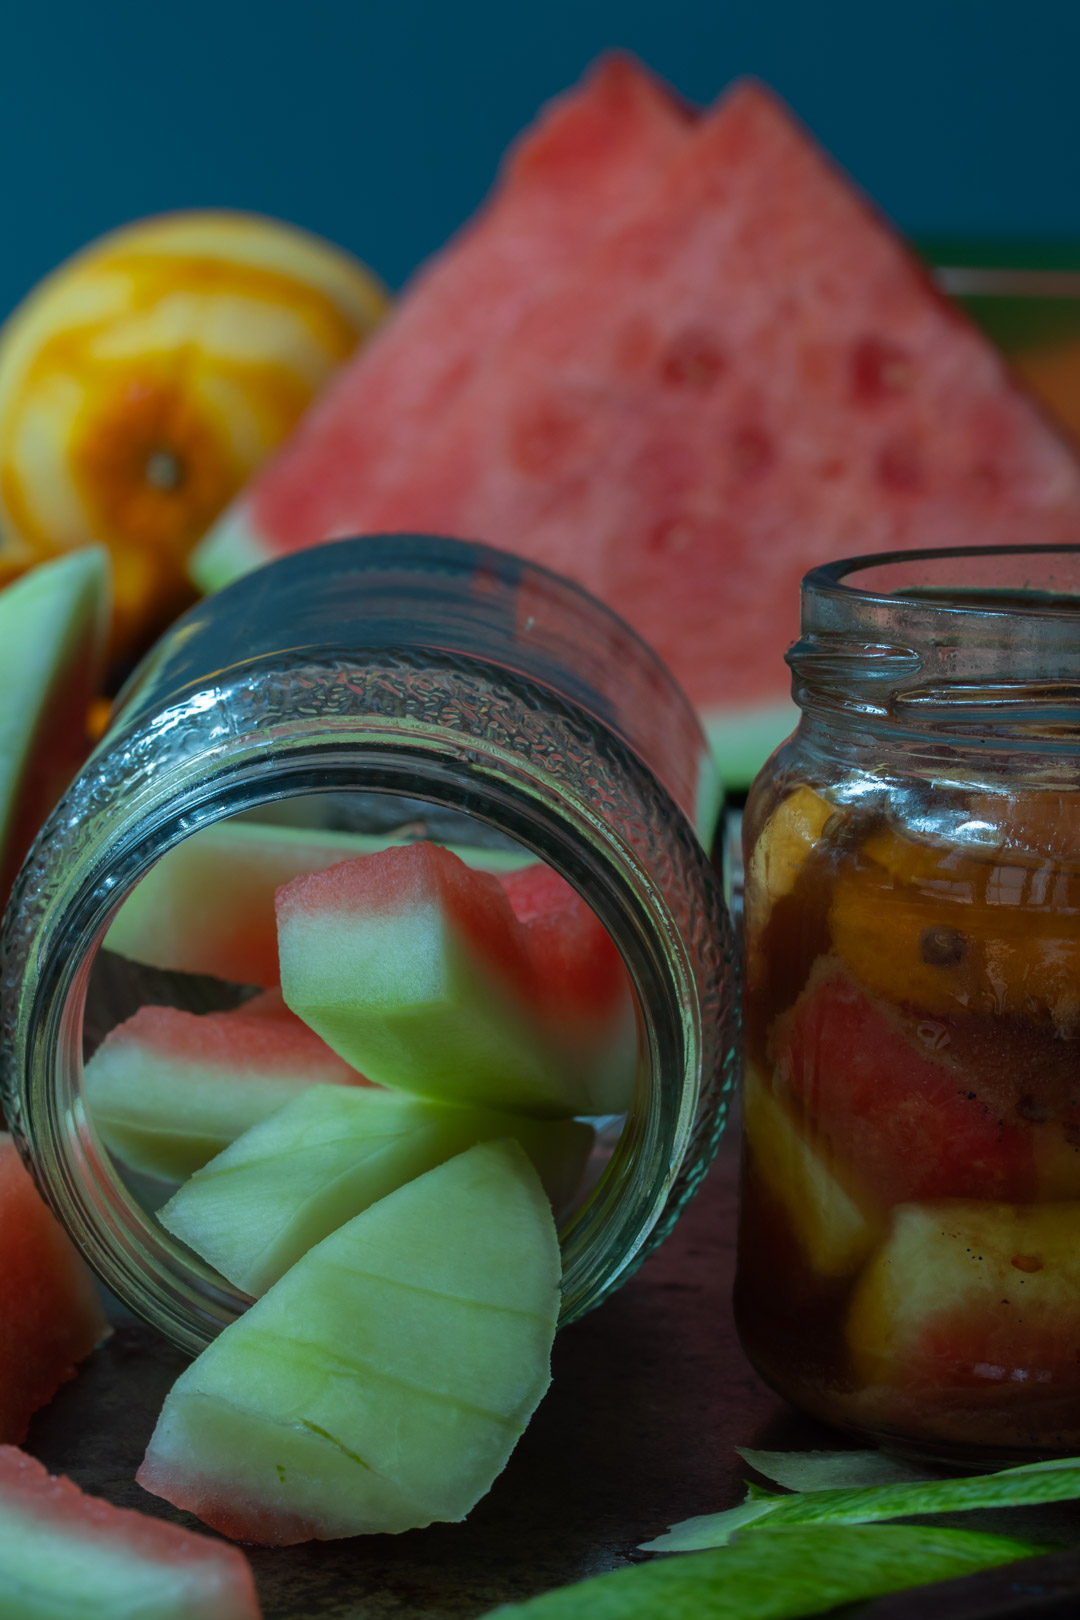 Quick watermelon rind pickle with cinnamon and chili: making pickles